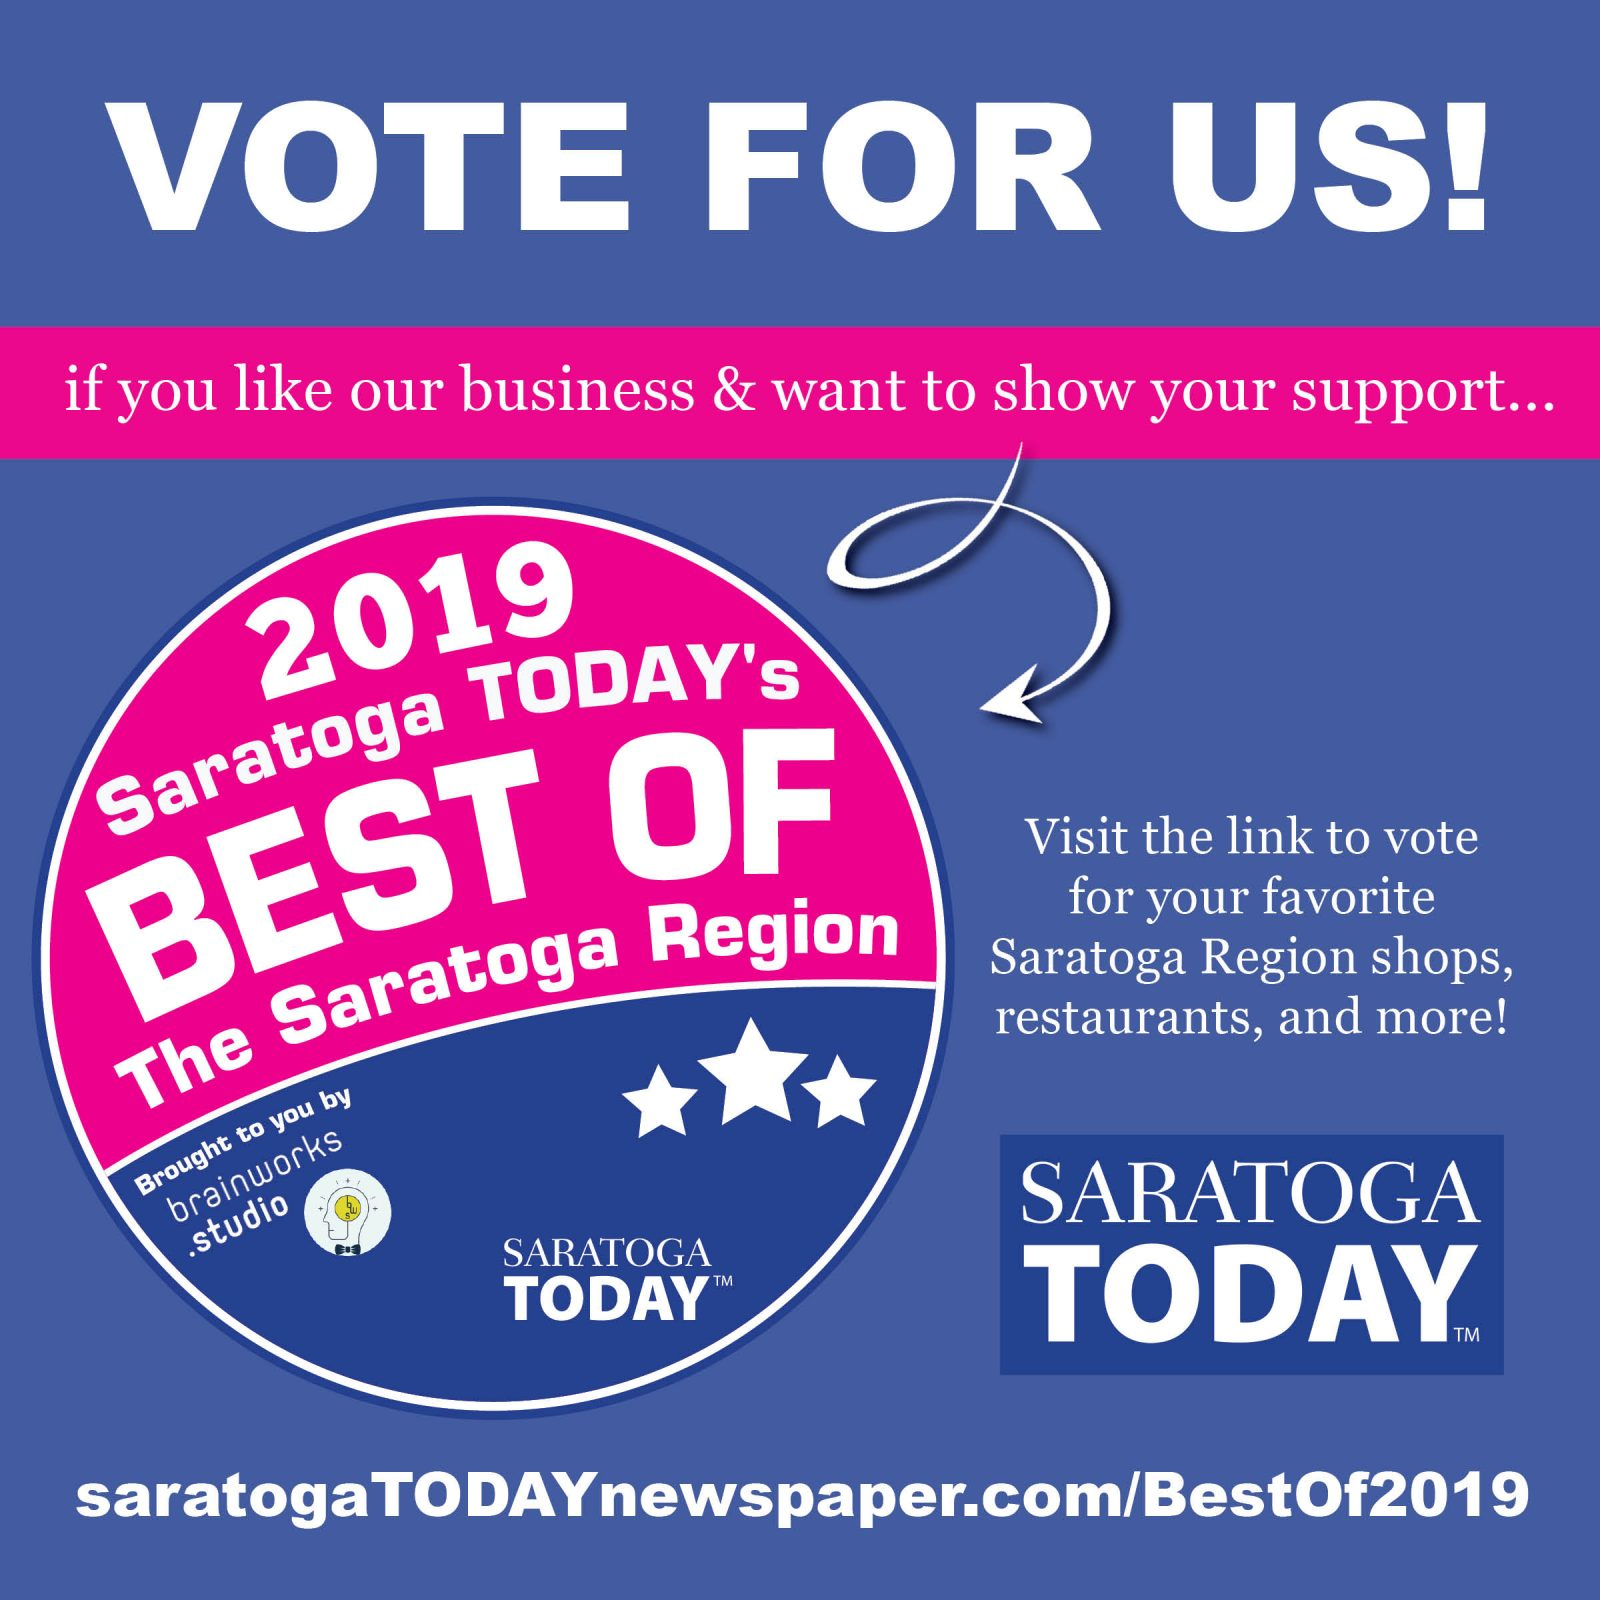 Saratoga Today Newspaper Best of 2019 Poll graphic.